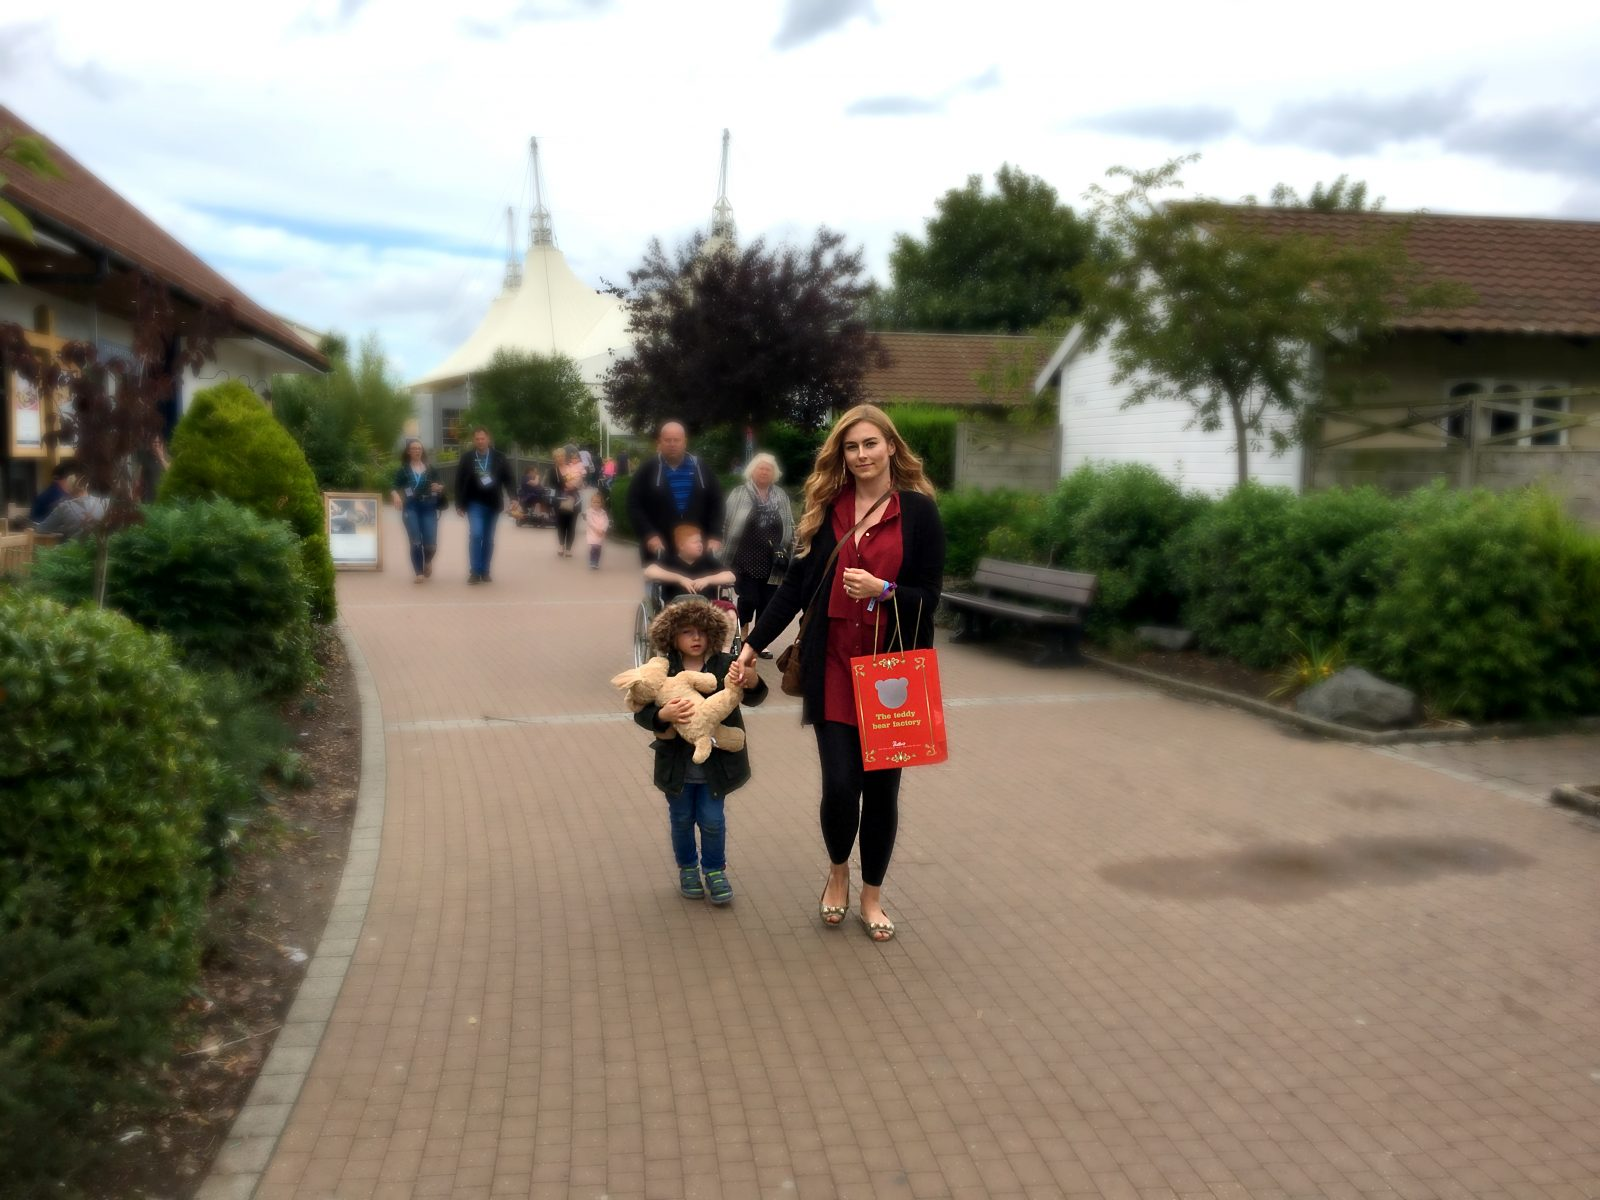 me walking with my son and his new teddy with butlins white tent in background